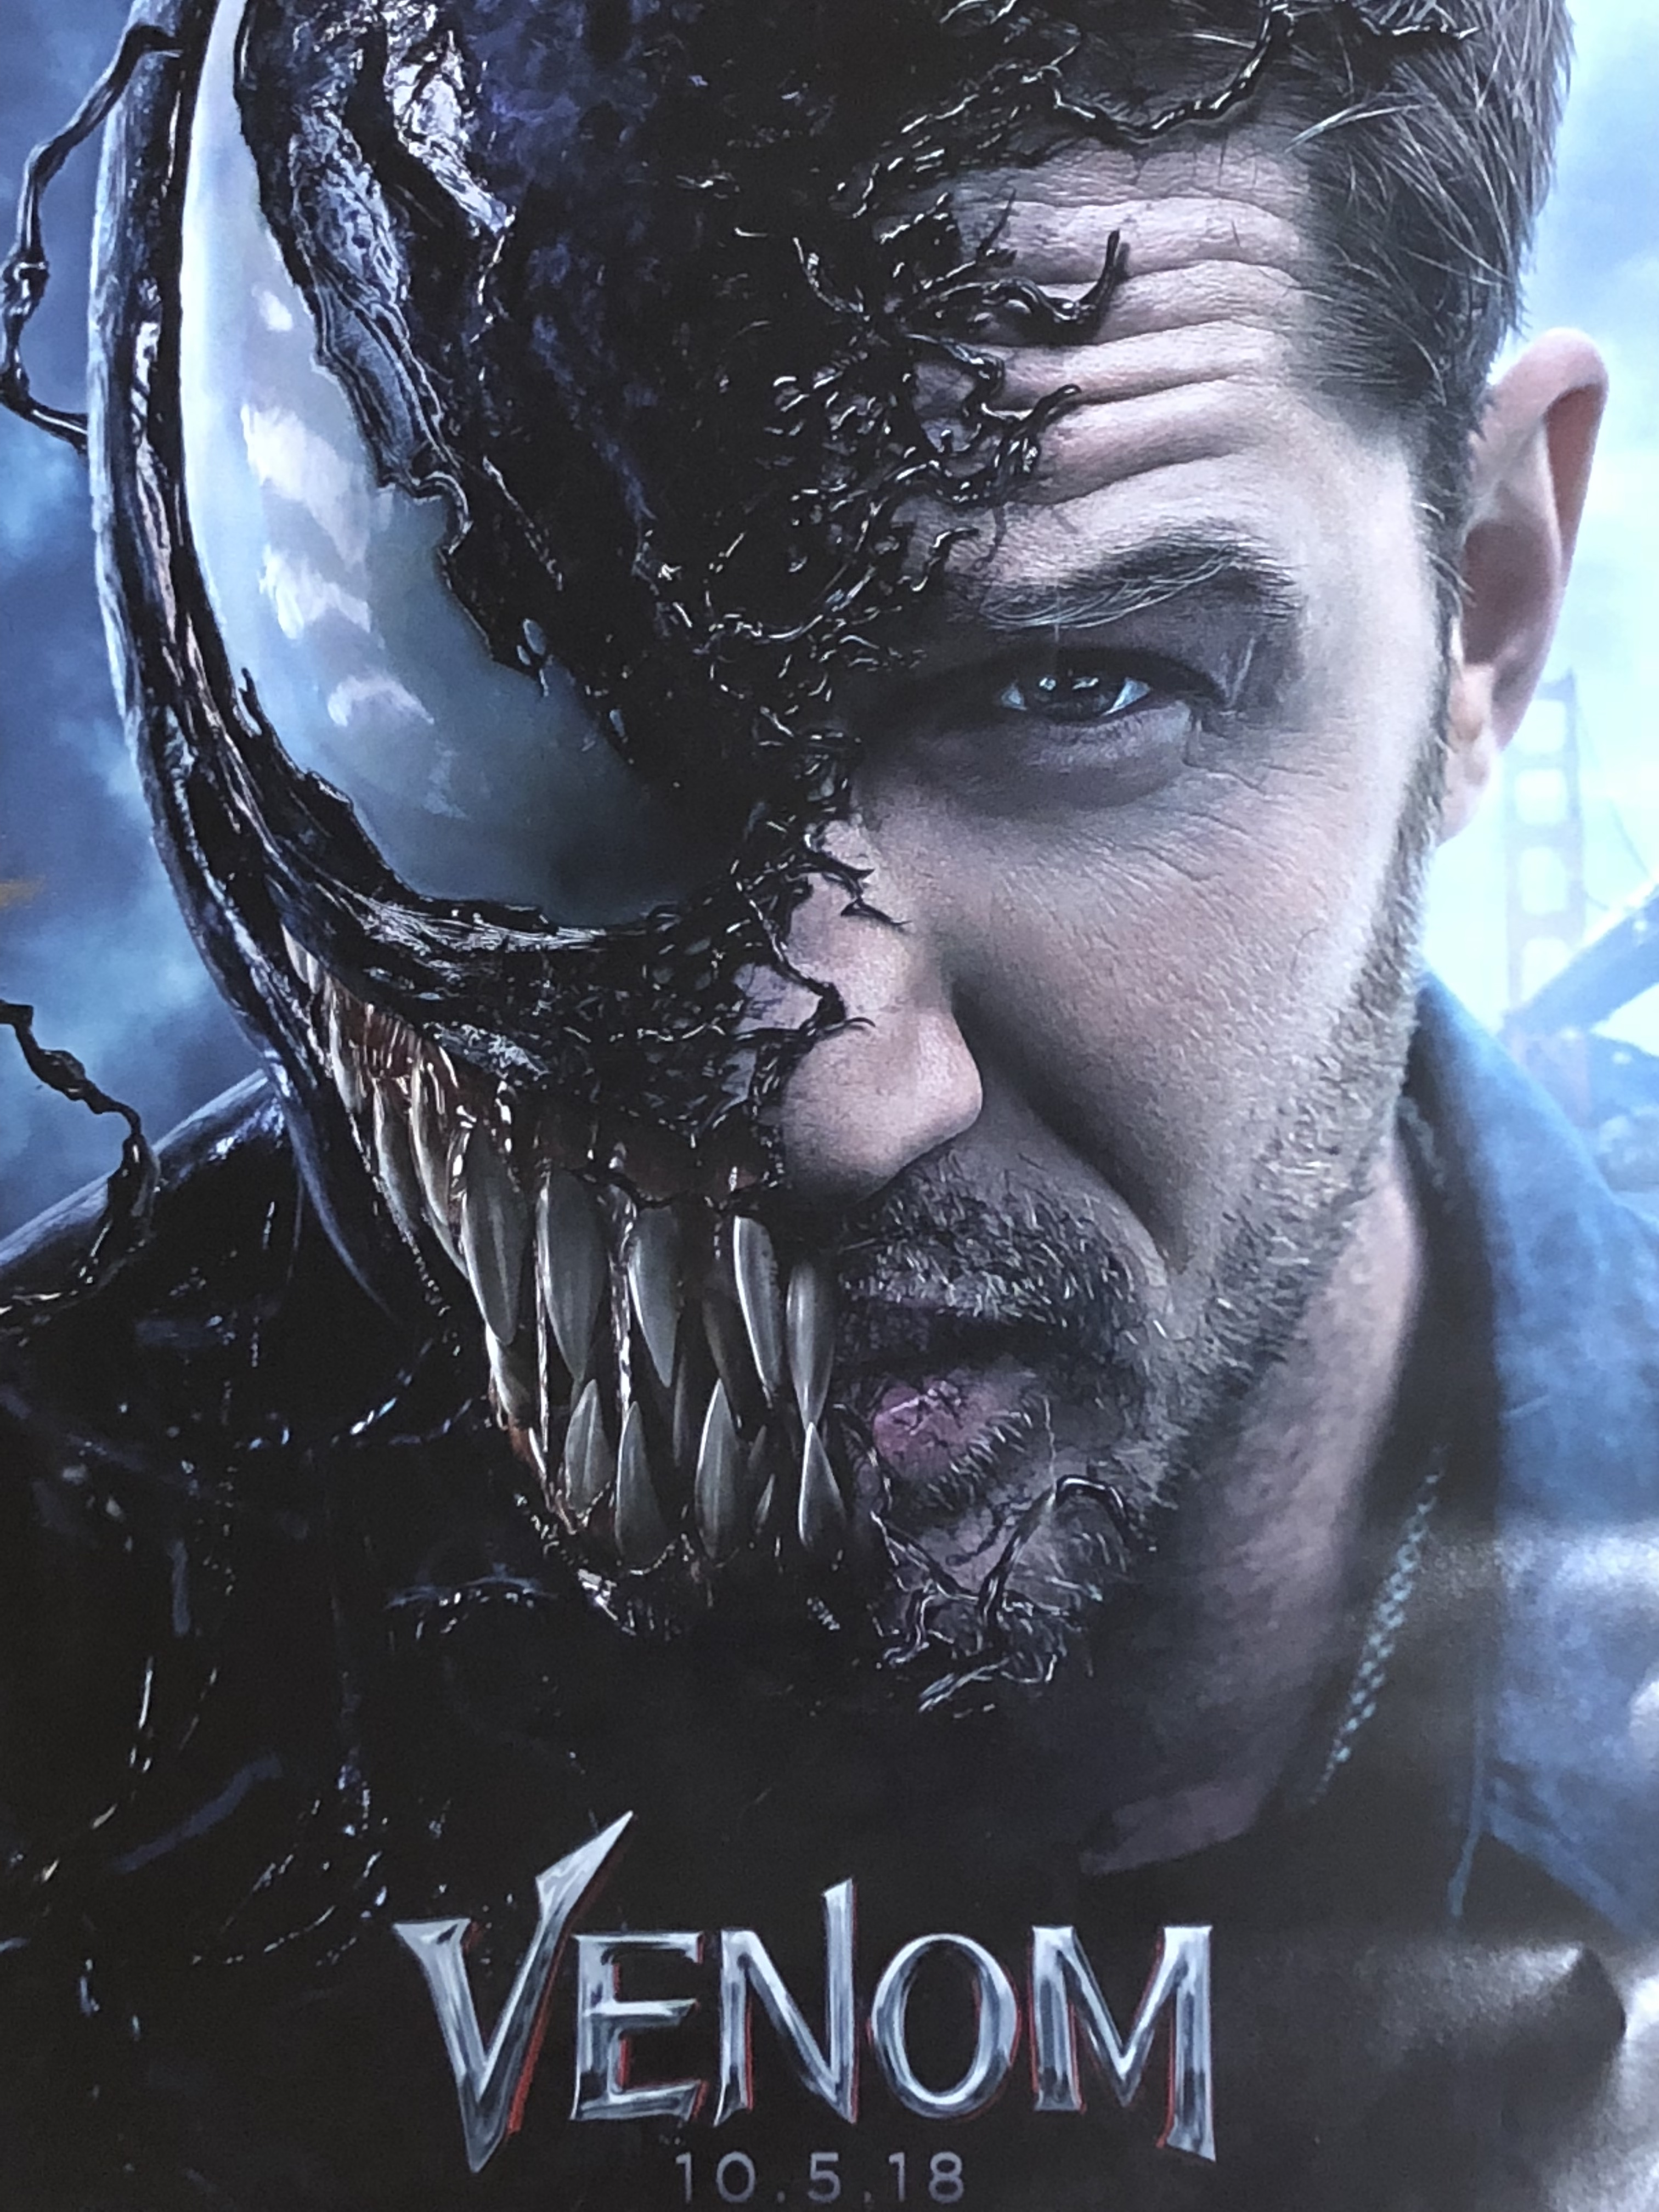 Venom' takes a bite out of the box office as critics and